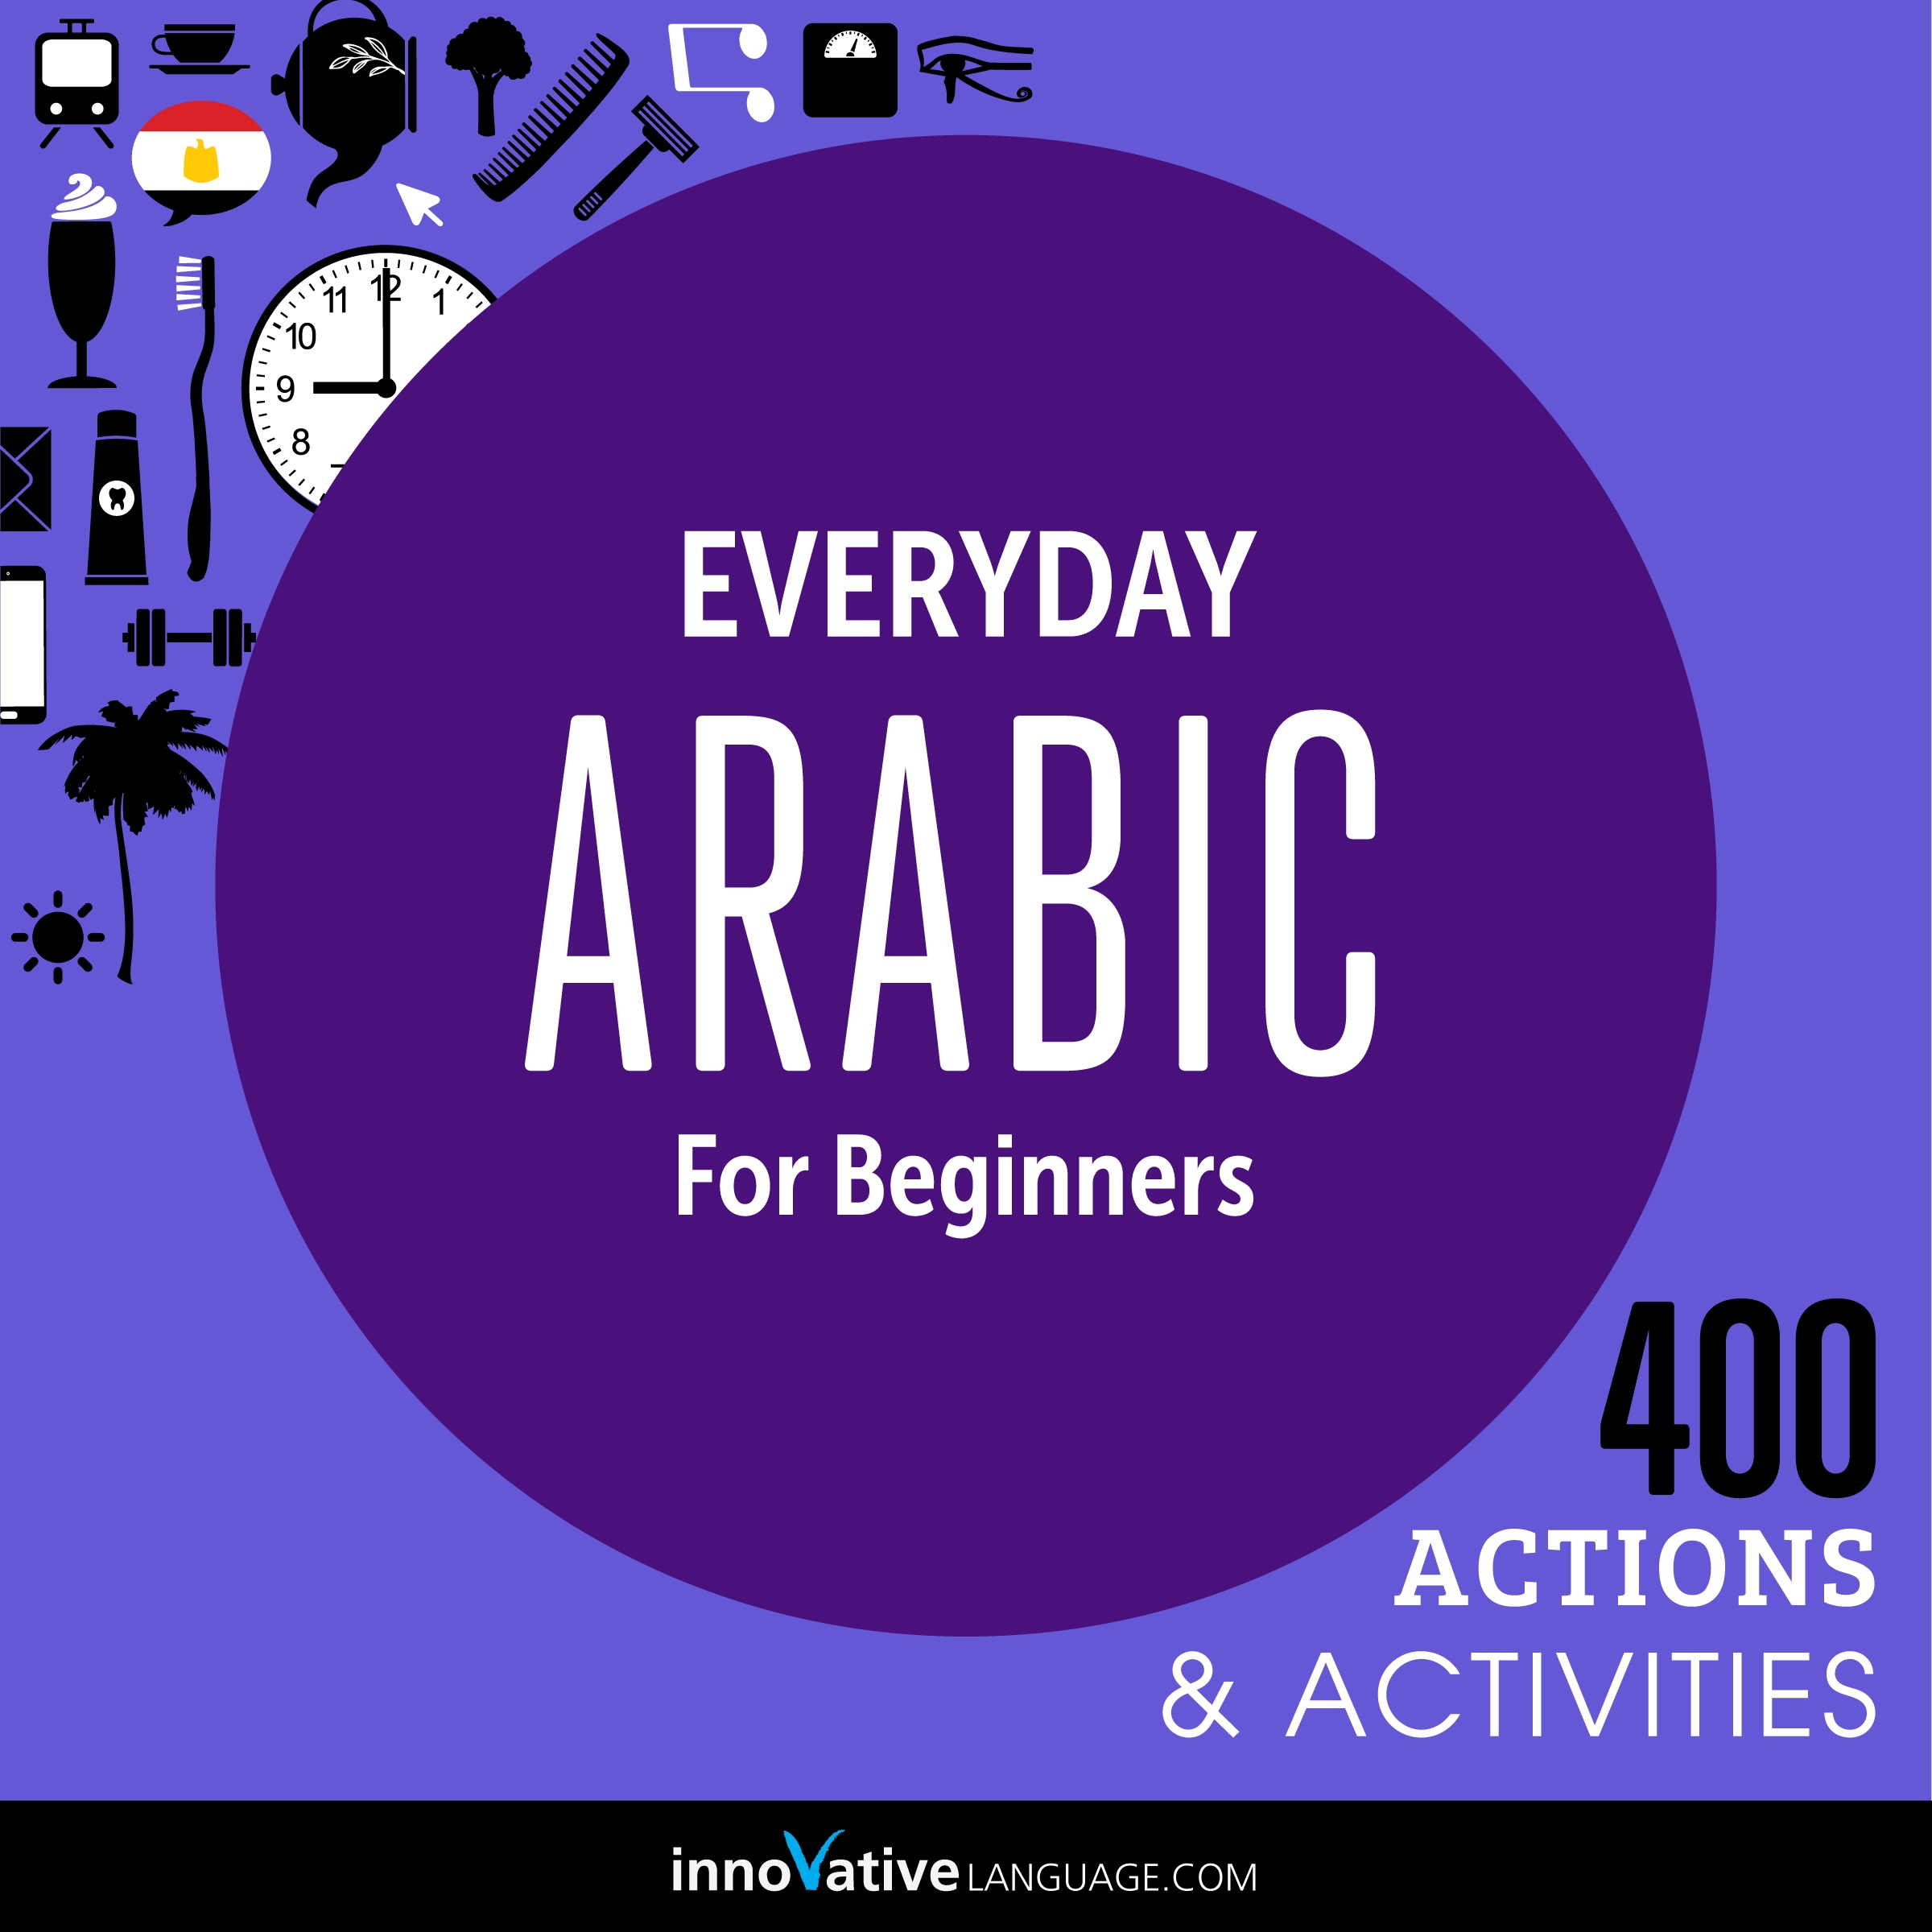 [Audiobook] Everyday Arabic for Beginners - 400 Actions & Activities